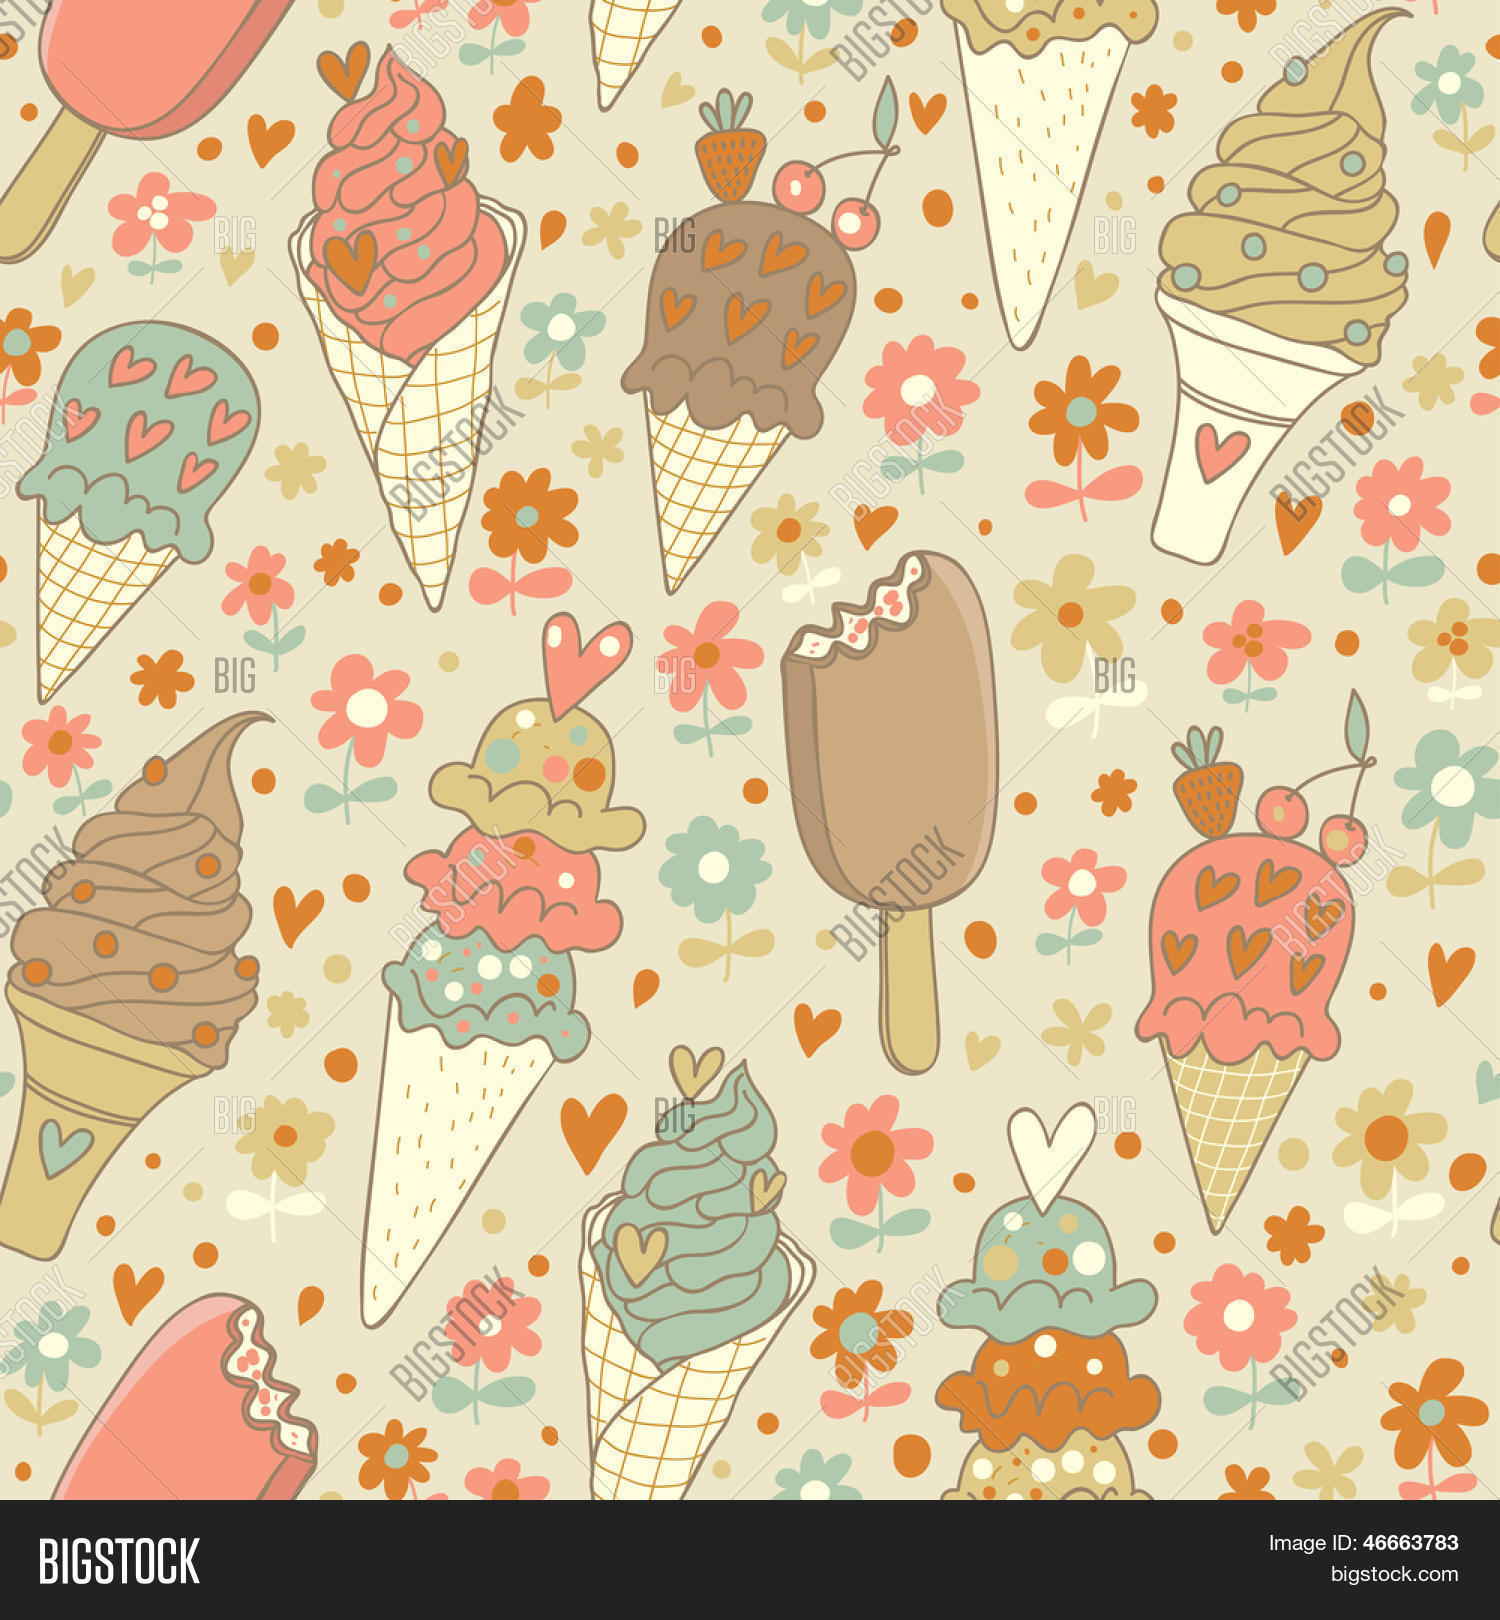 Seamless Ice Cream Background Vintage Style: Cute Vintage Summer Vector & Photo (Free Trial)